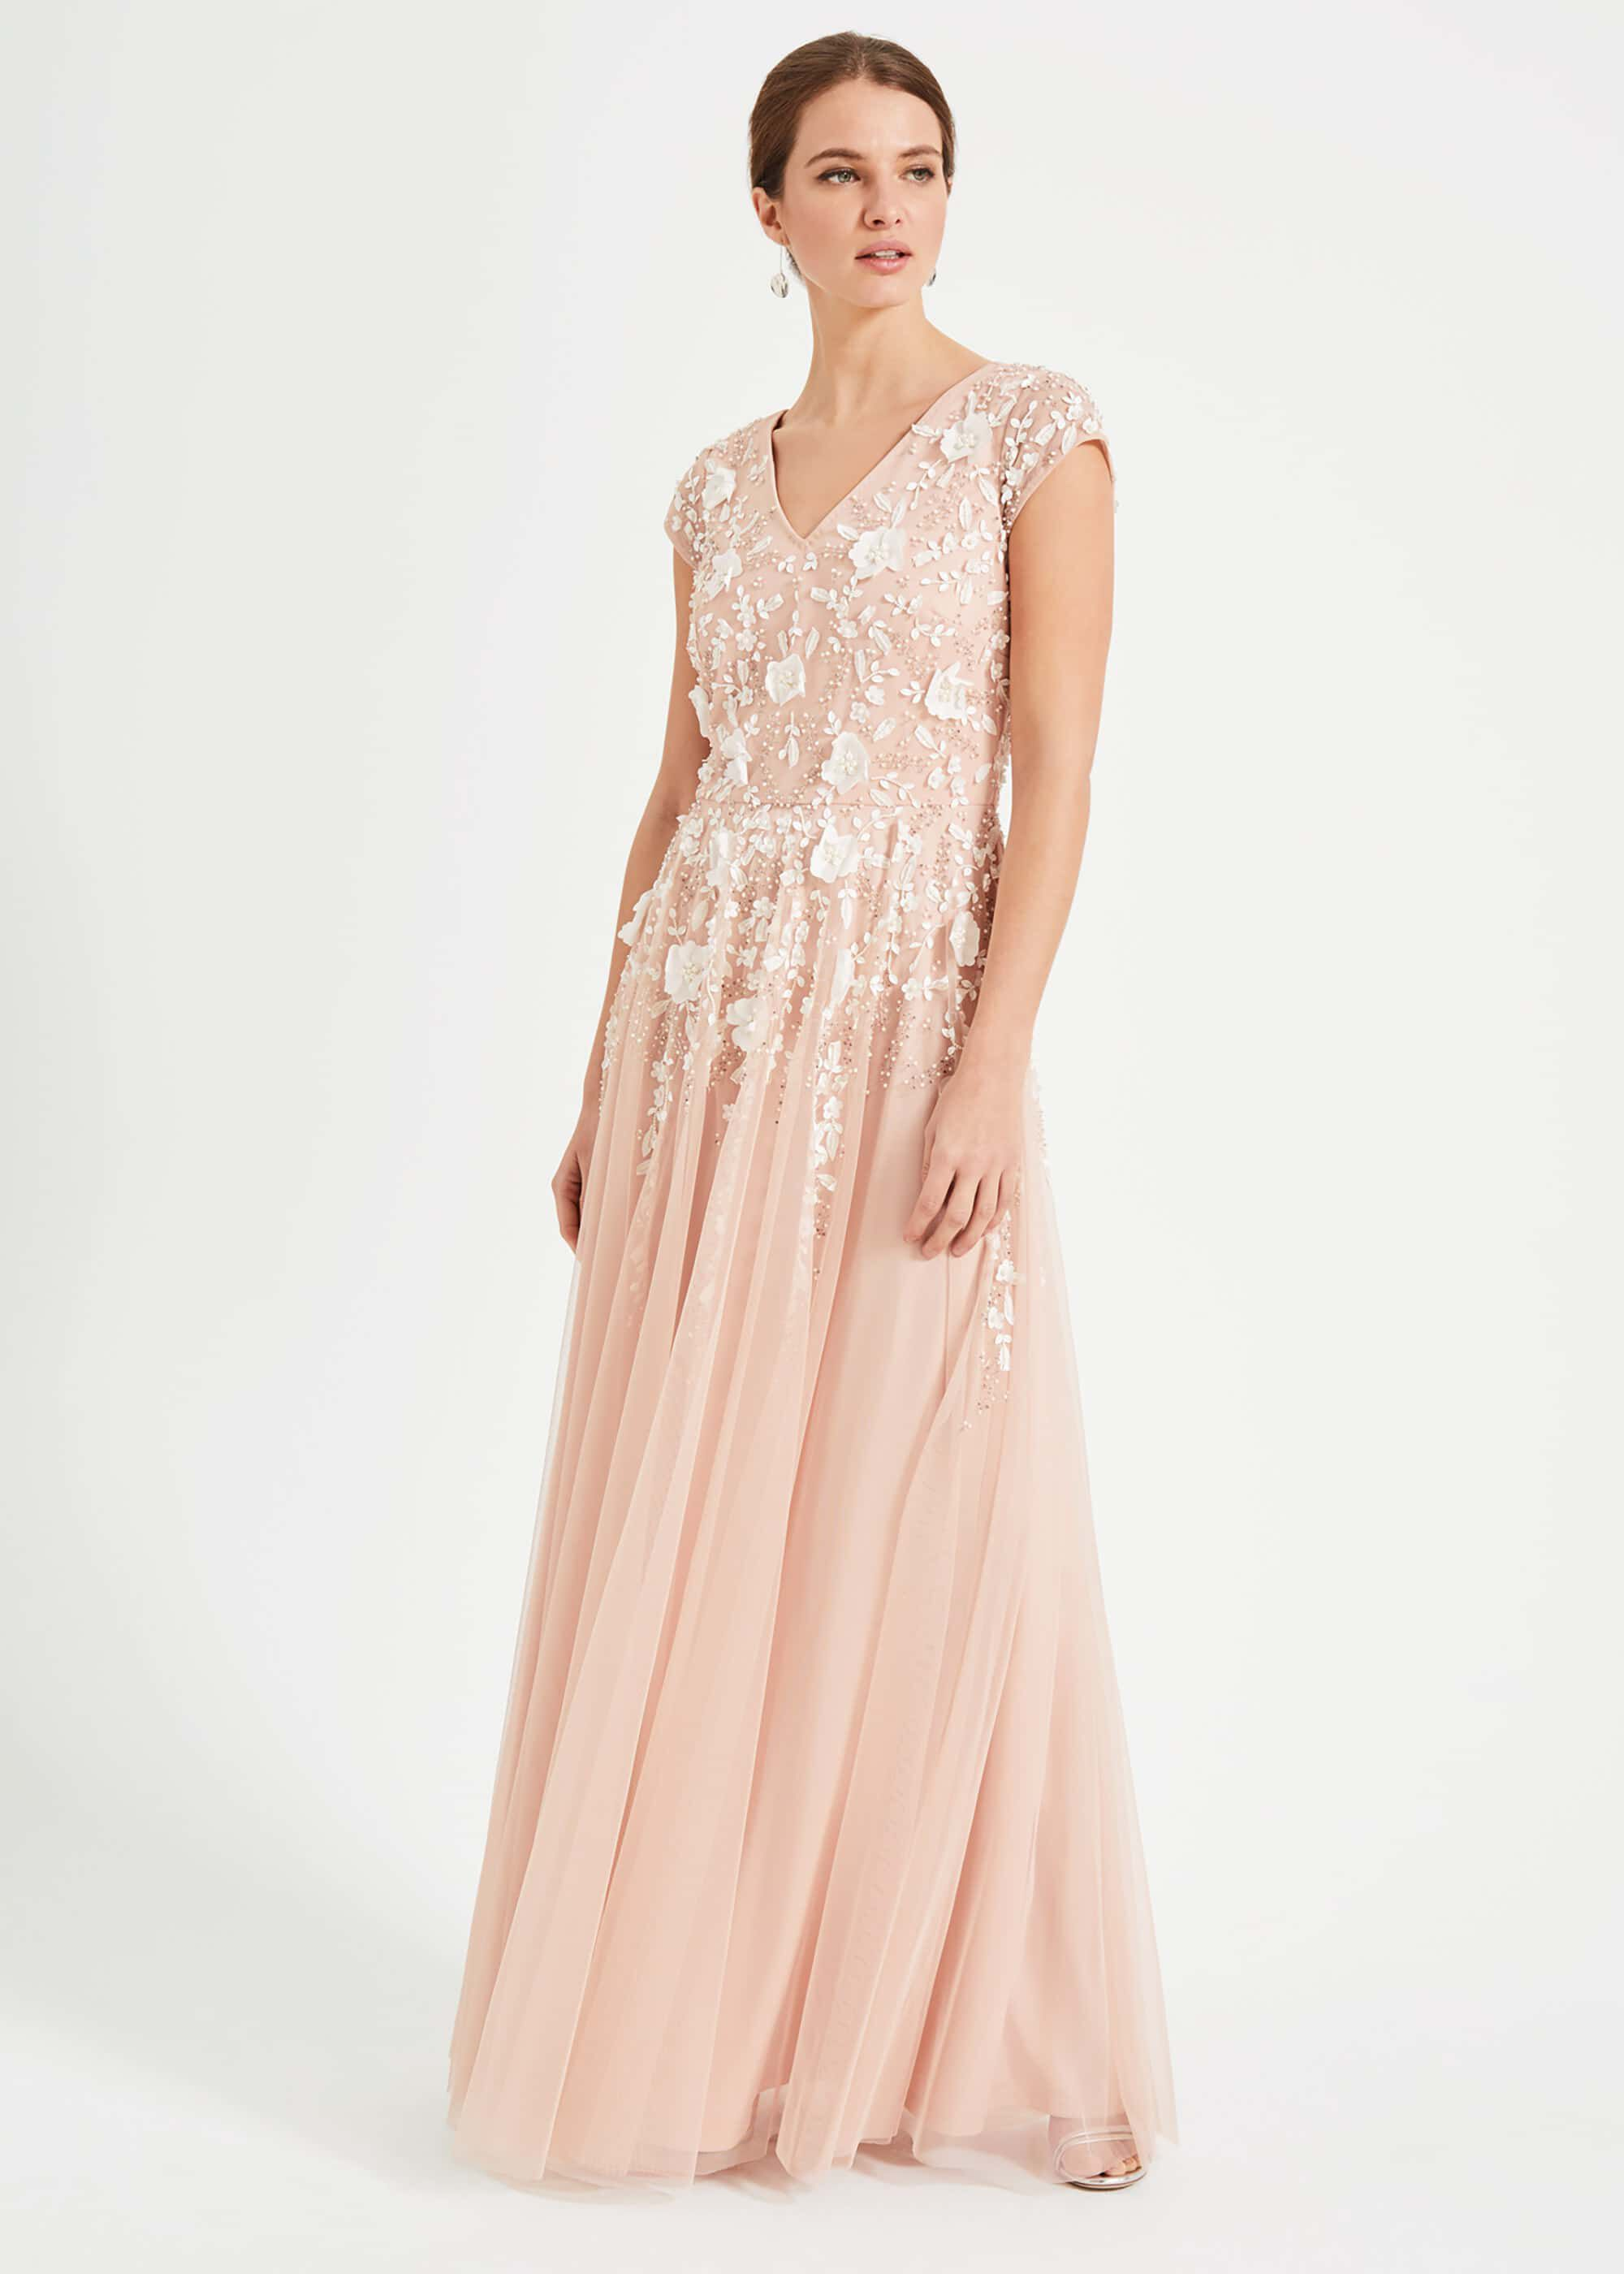 Phase Eight Henriette Flower Maxi Dress, Pink, Maxi, Occasion Dress